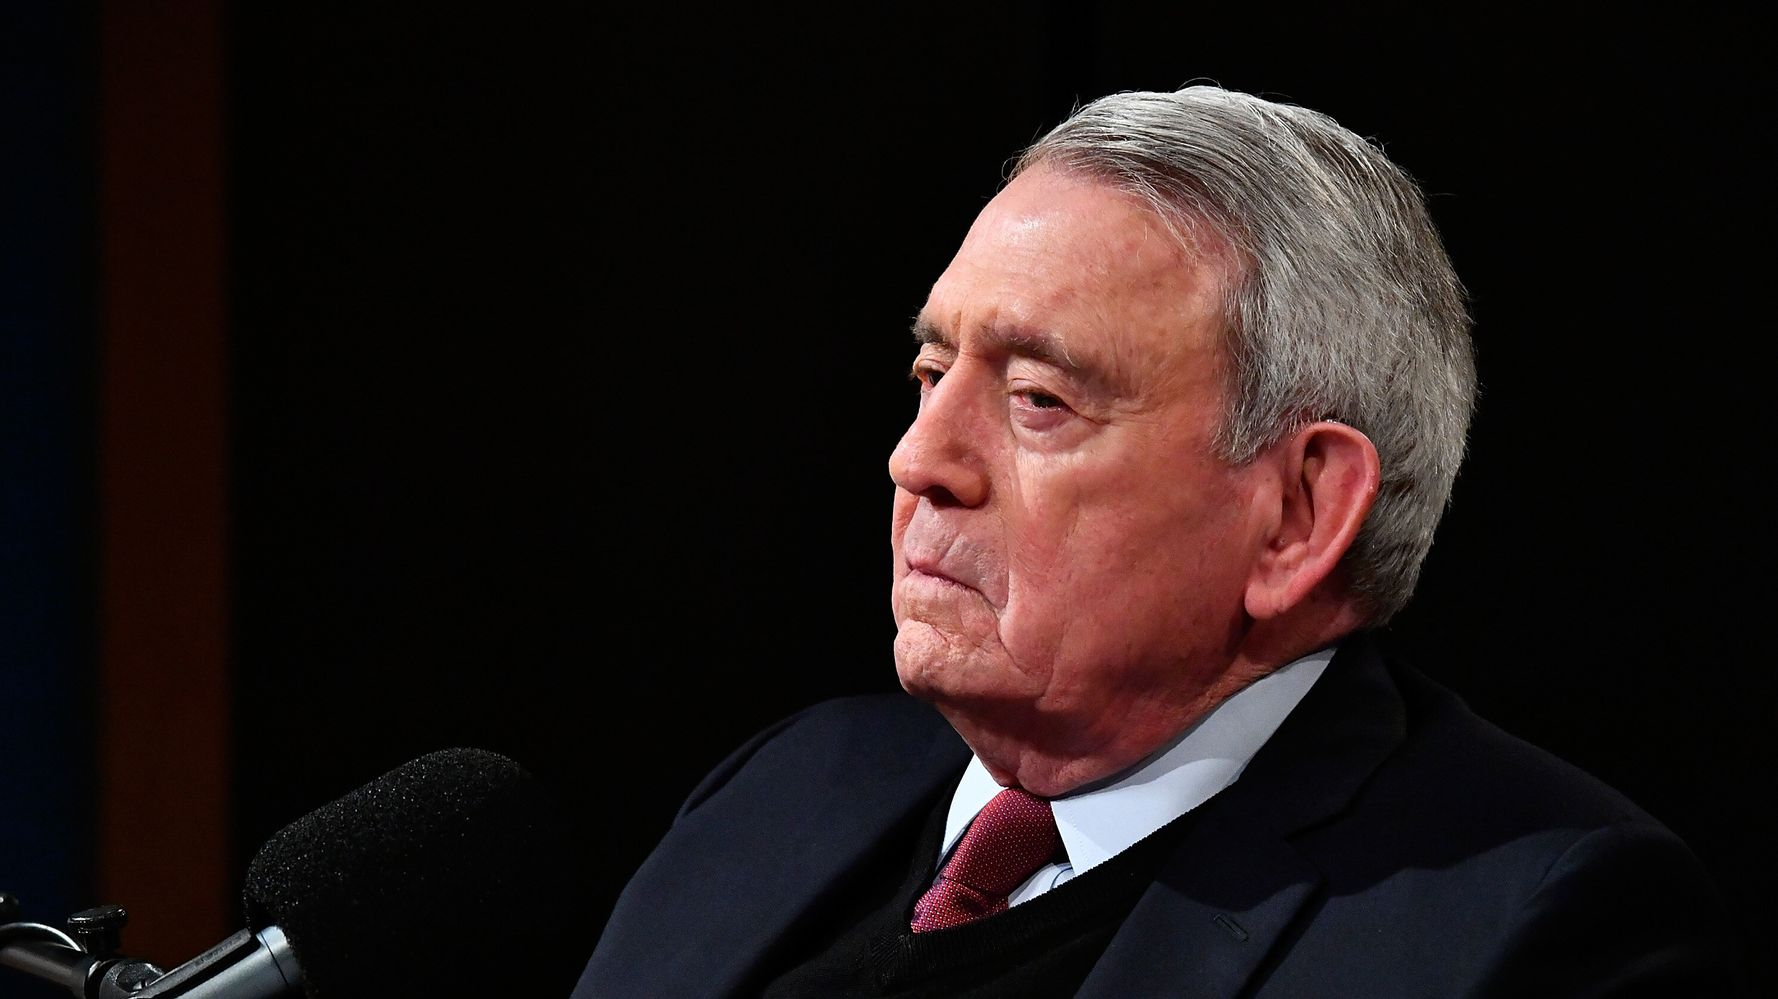 Dan Rather Reflects On 2020, Trump's Legacy And The 'Deep And Wide' Divisions Of America